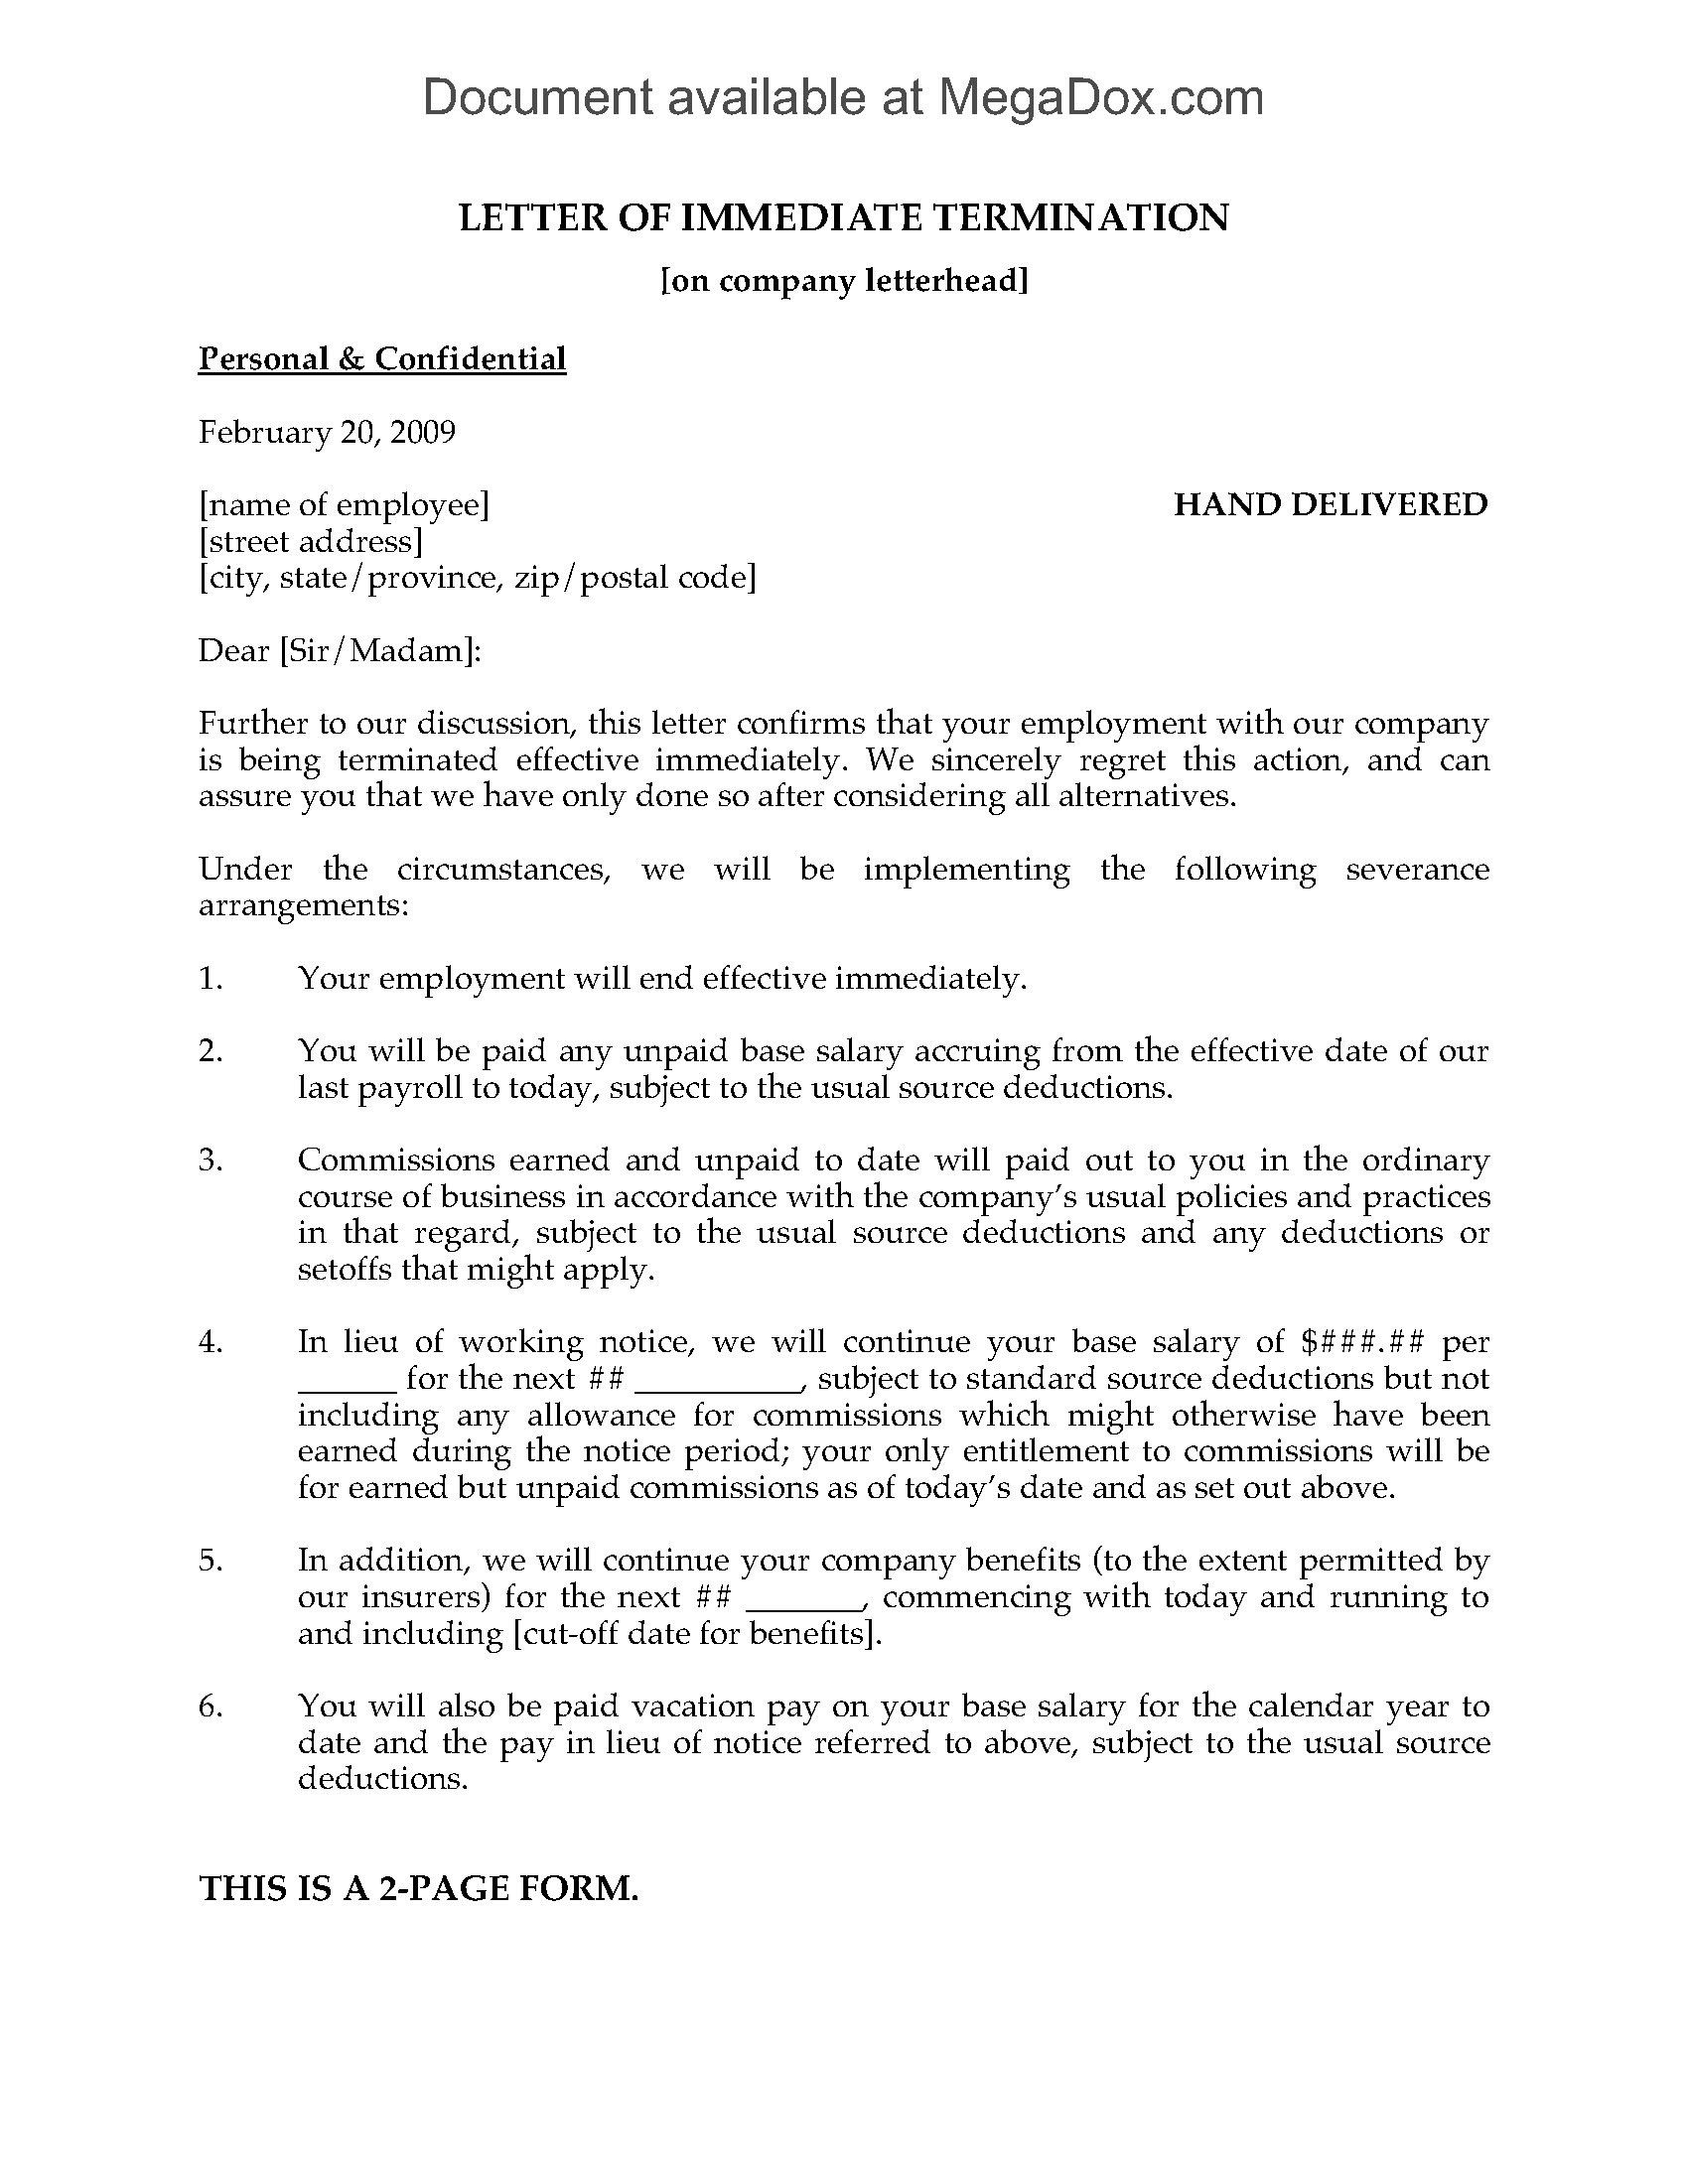 Termination For Cause Letter Awesome Reason For Termination Letter Resignation Letter Letter Templates Free Resignation Letter Sample